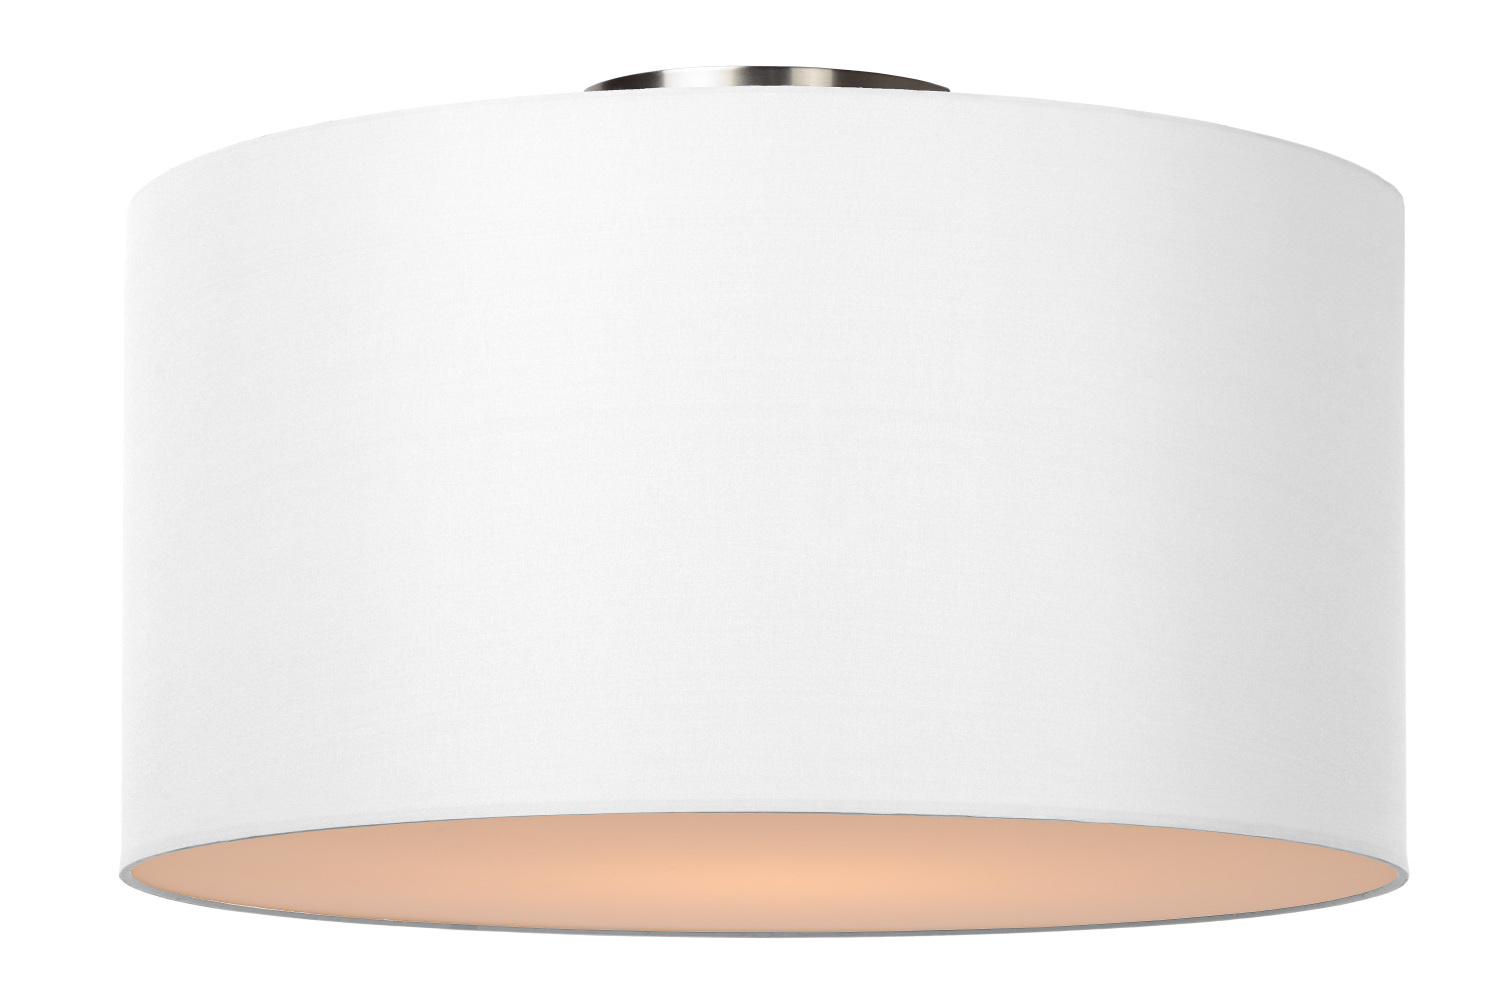 Lucide Plafondlamp Coral groot ei-wit